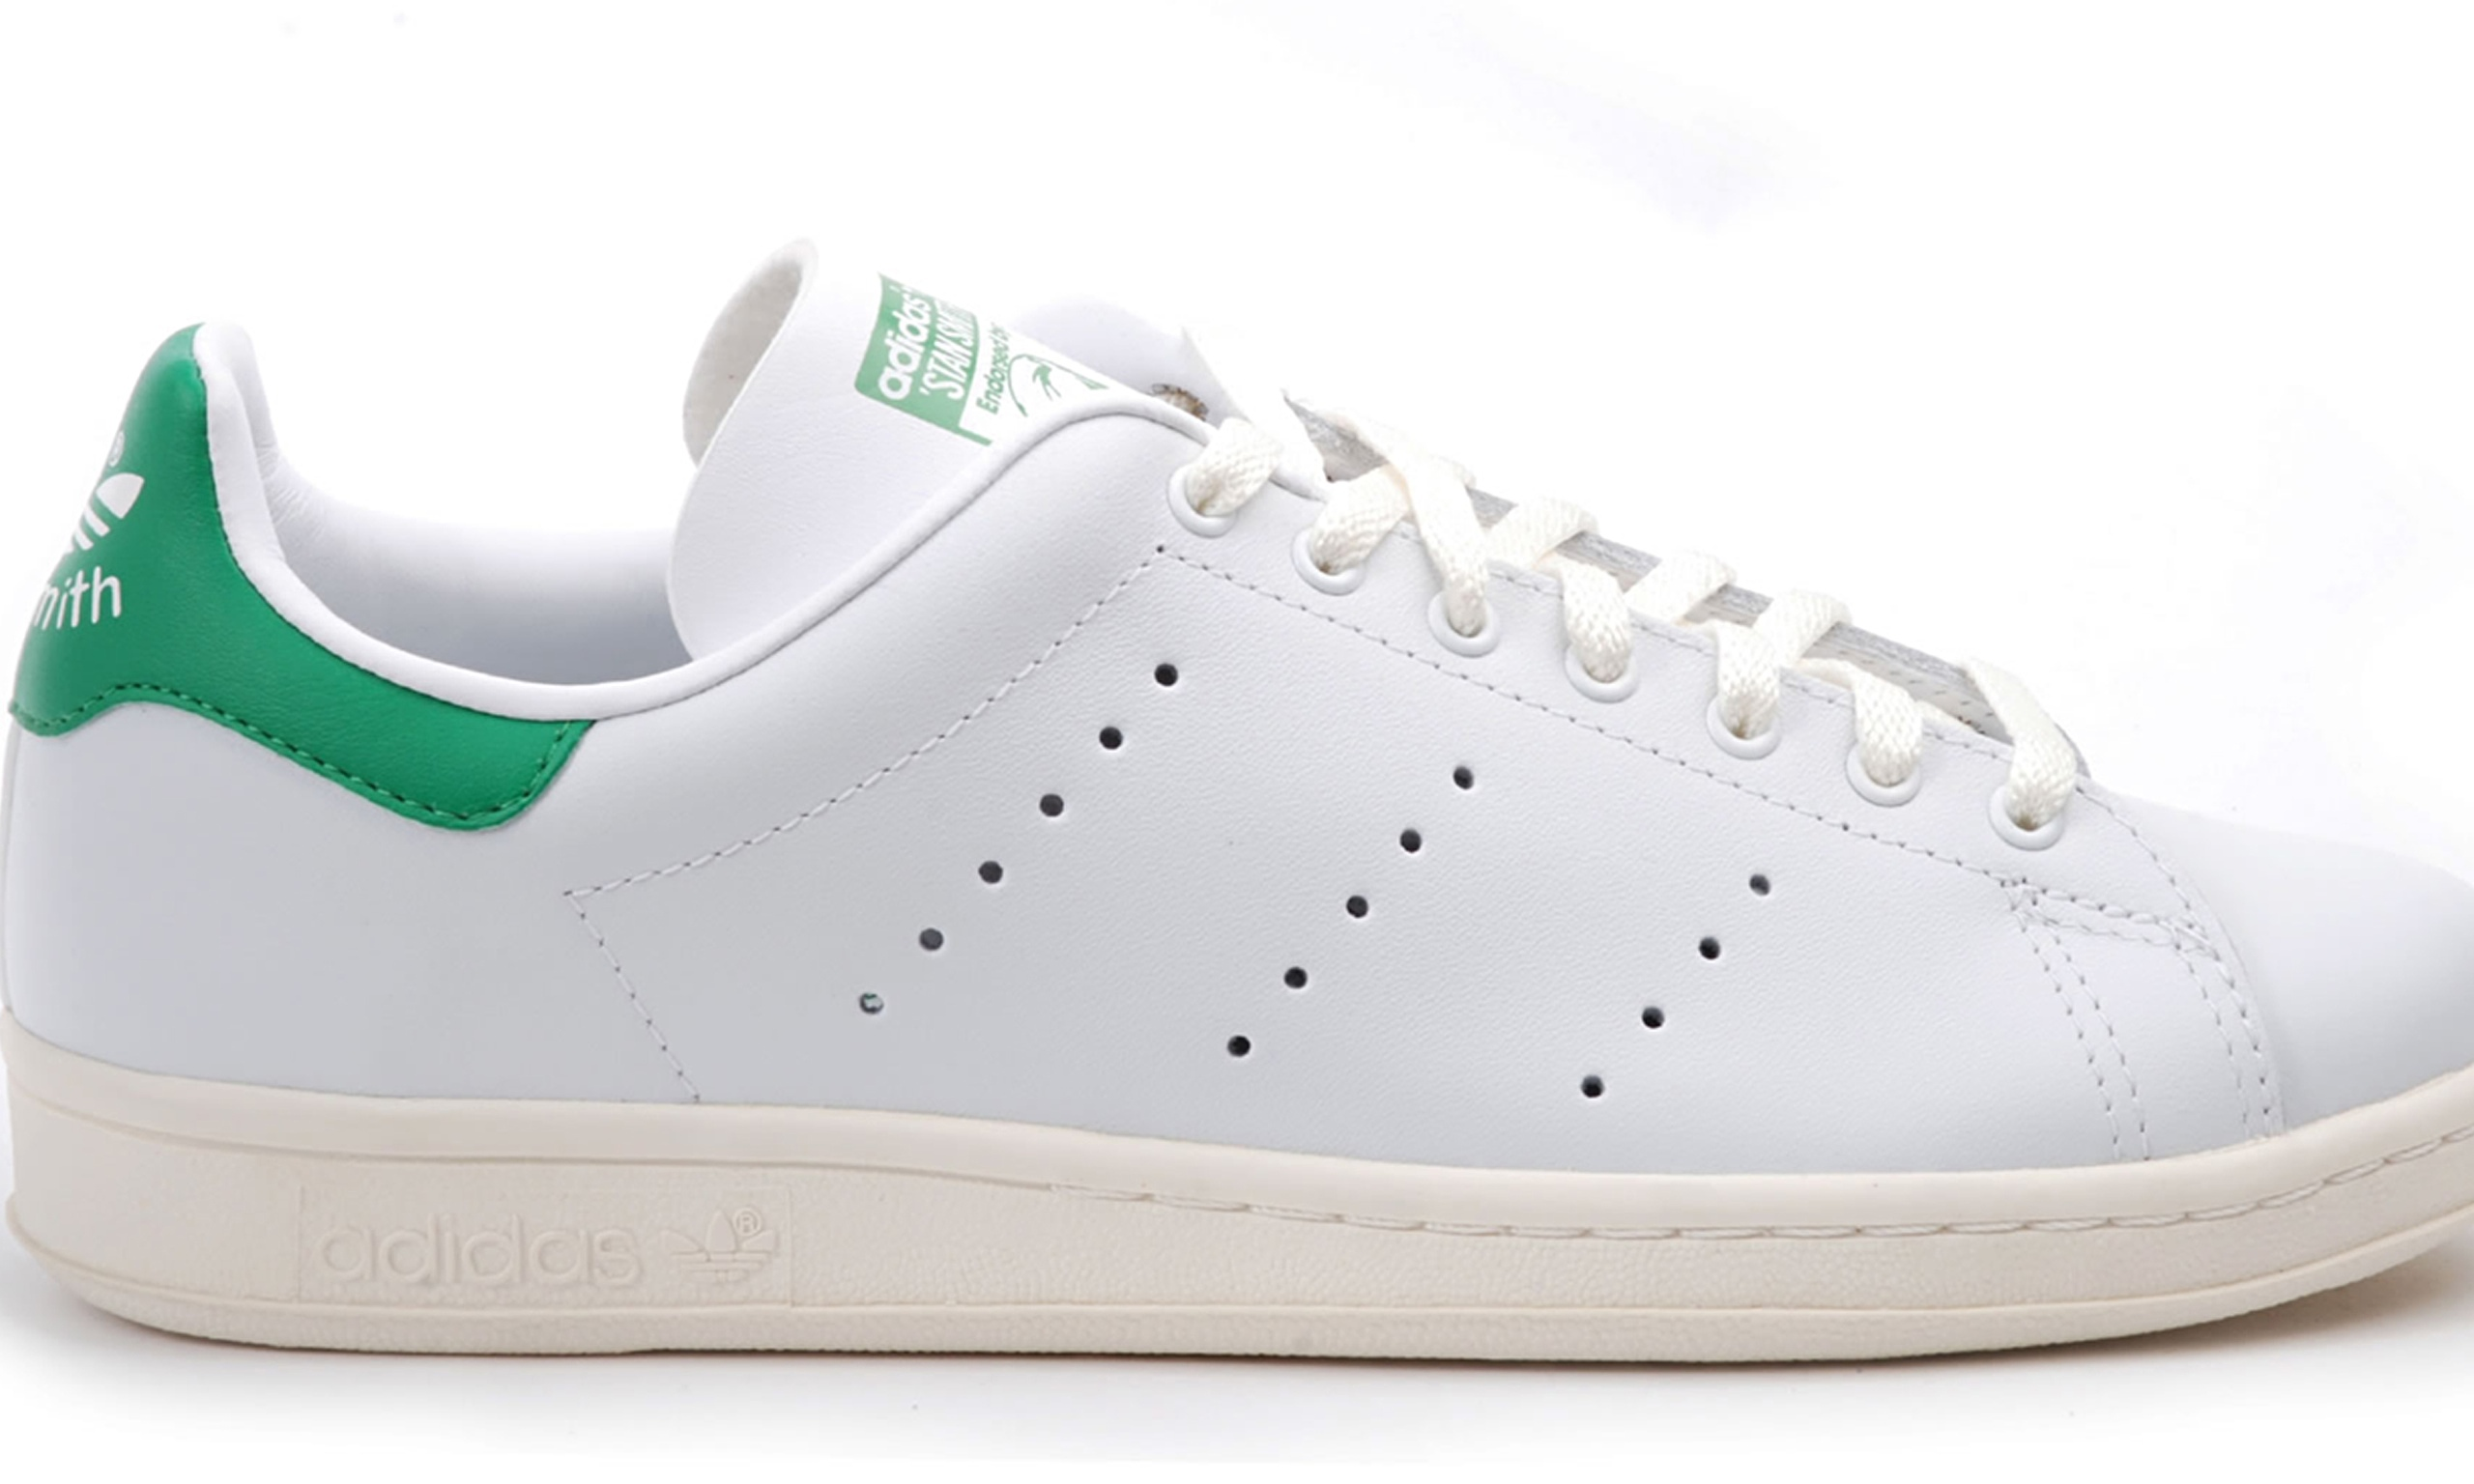 newest collection 89017 969e9 Stan Smith Adidas shoe - Vintage Adidas